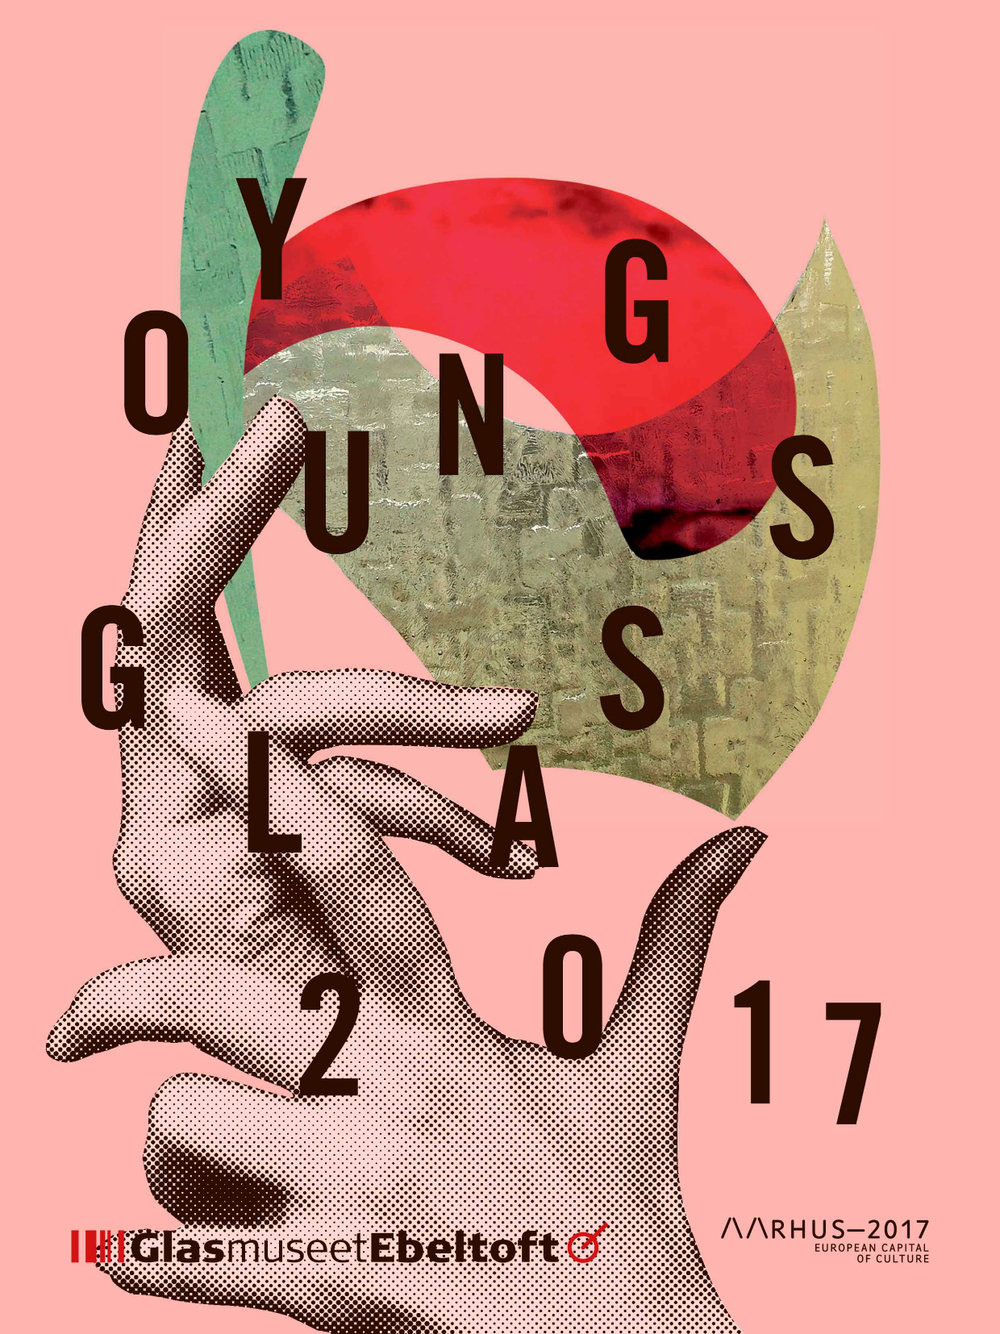 youngglass.jpg